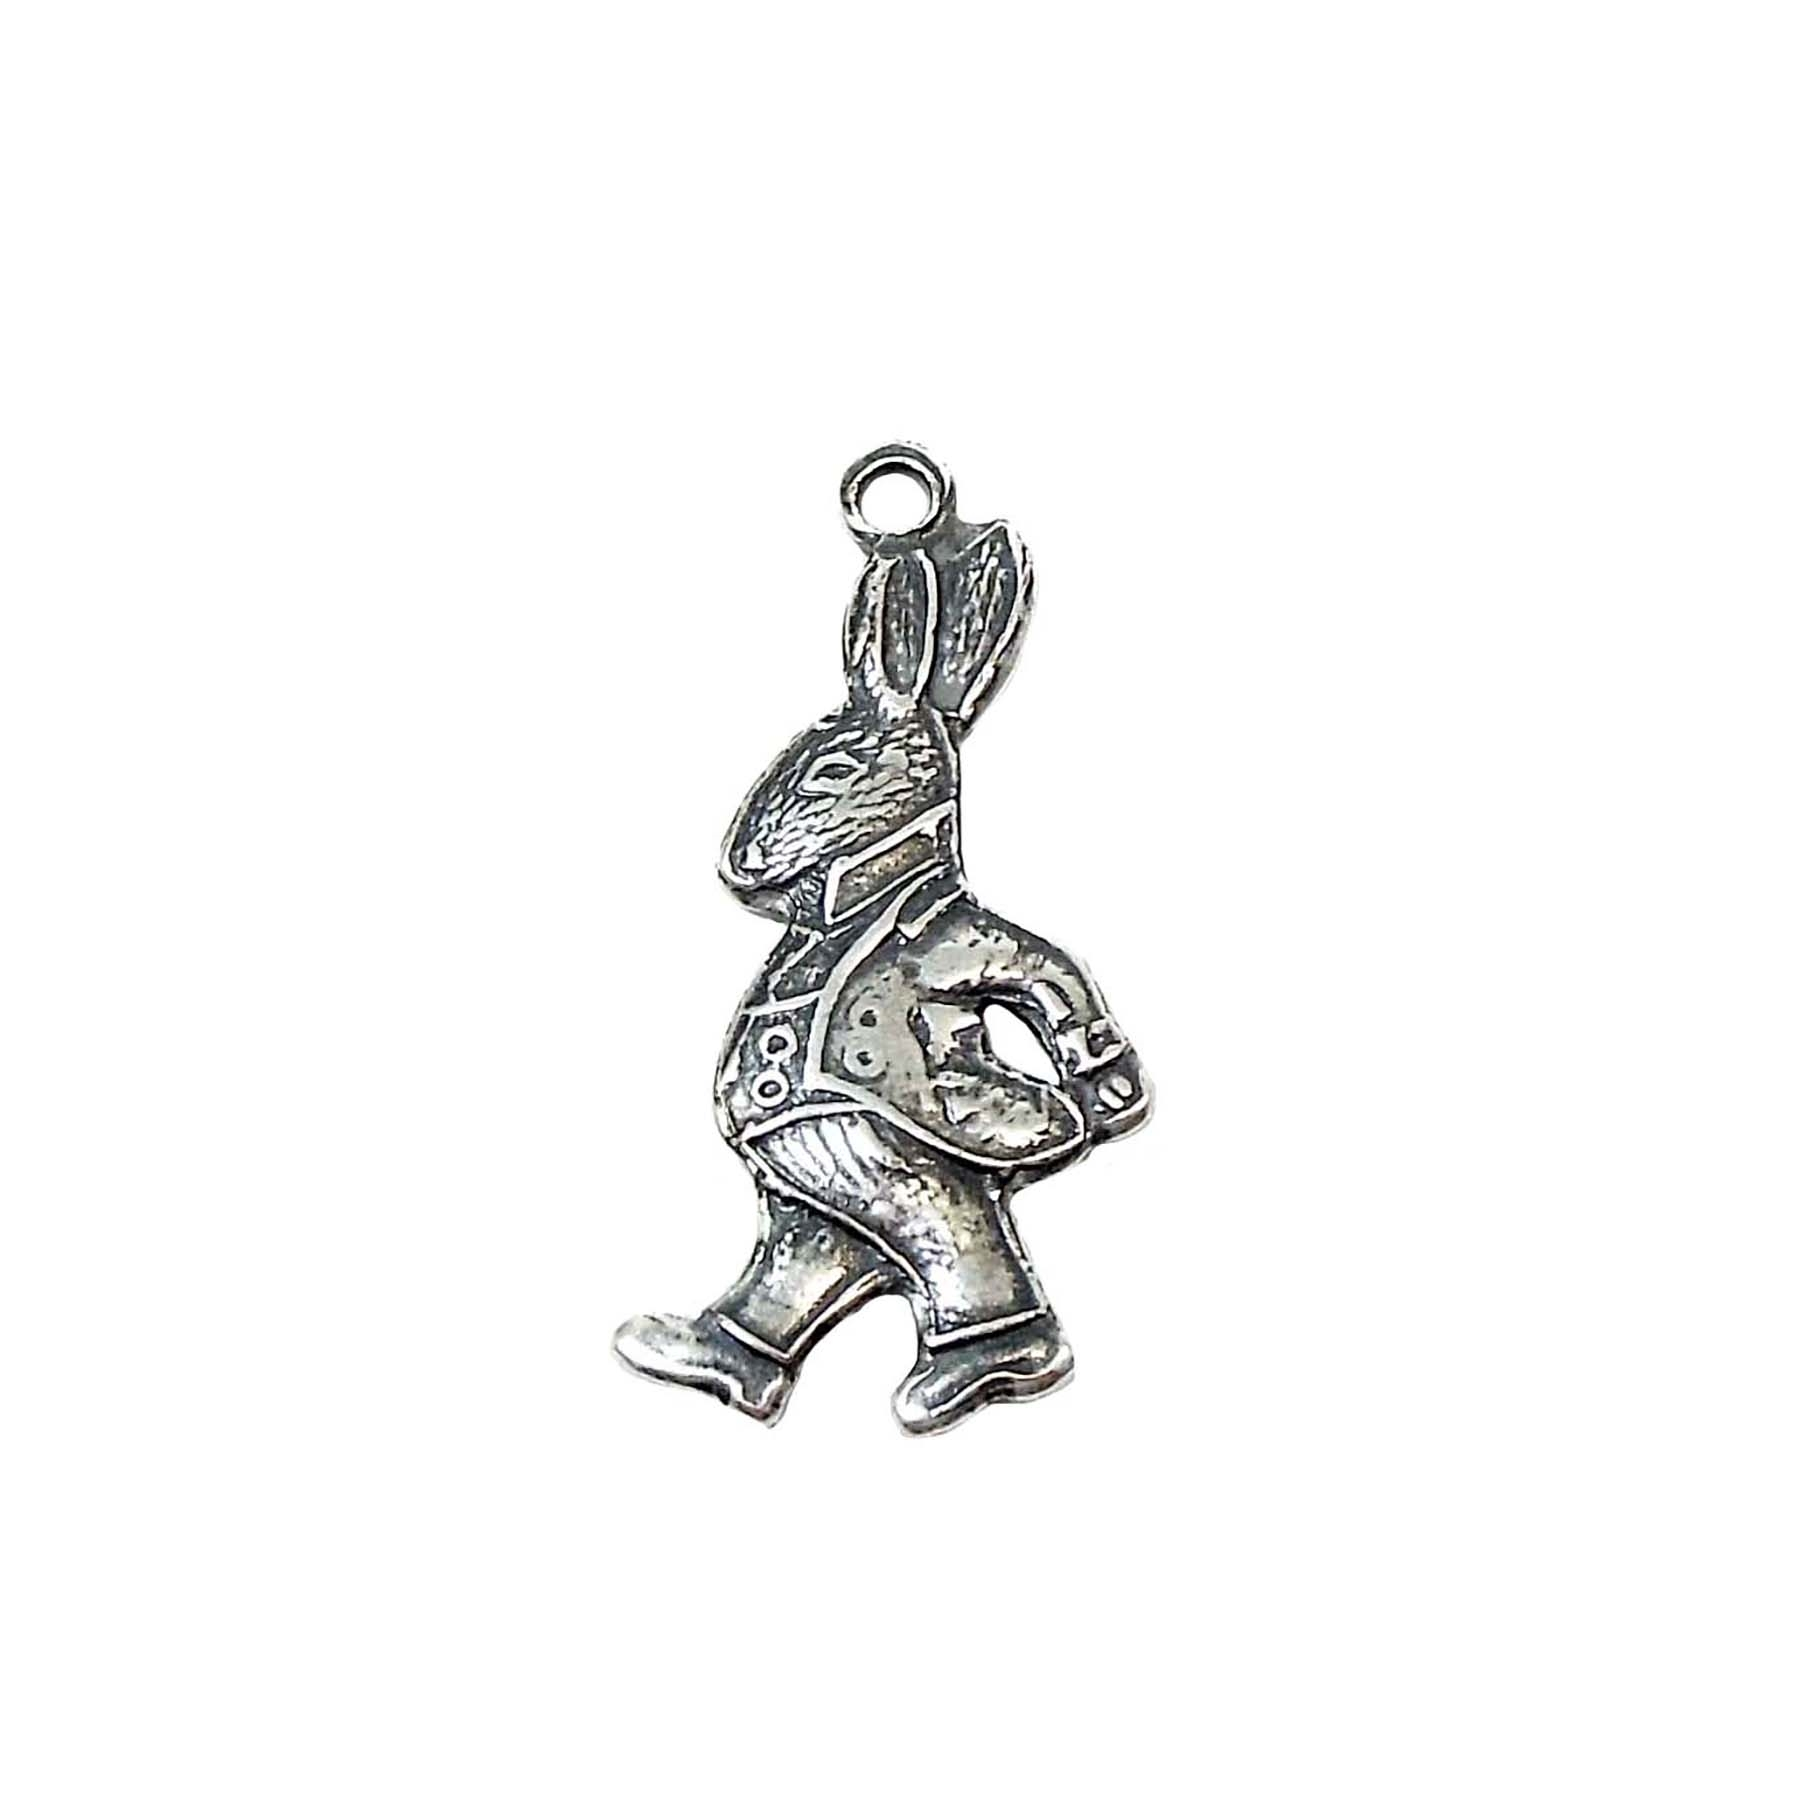 rabbit in suit charm, silverware silverplate, peter rabbit charm, rabbit charm, charm, Alice in wonderland rabbit charm, antique silver, silver rabbit, jewelry charm, jewelry making, jewelry supplies, vintage supplies, US-made, nickel-free, 22x11mm, 02861